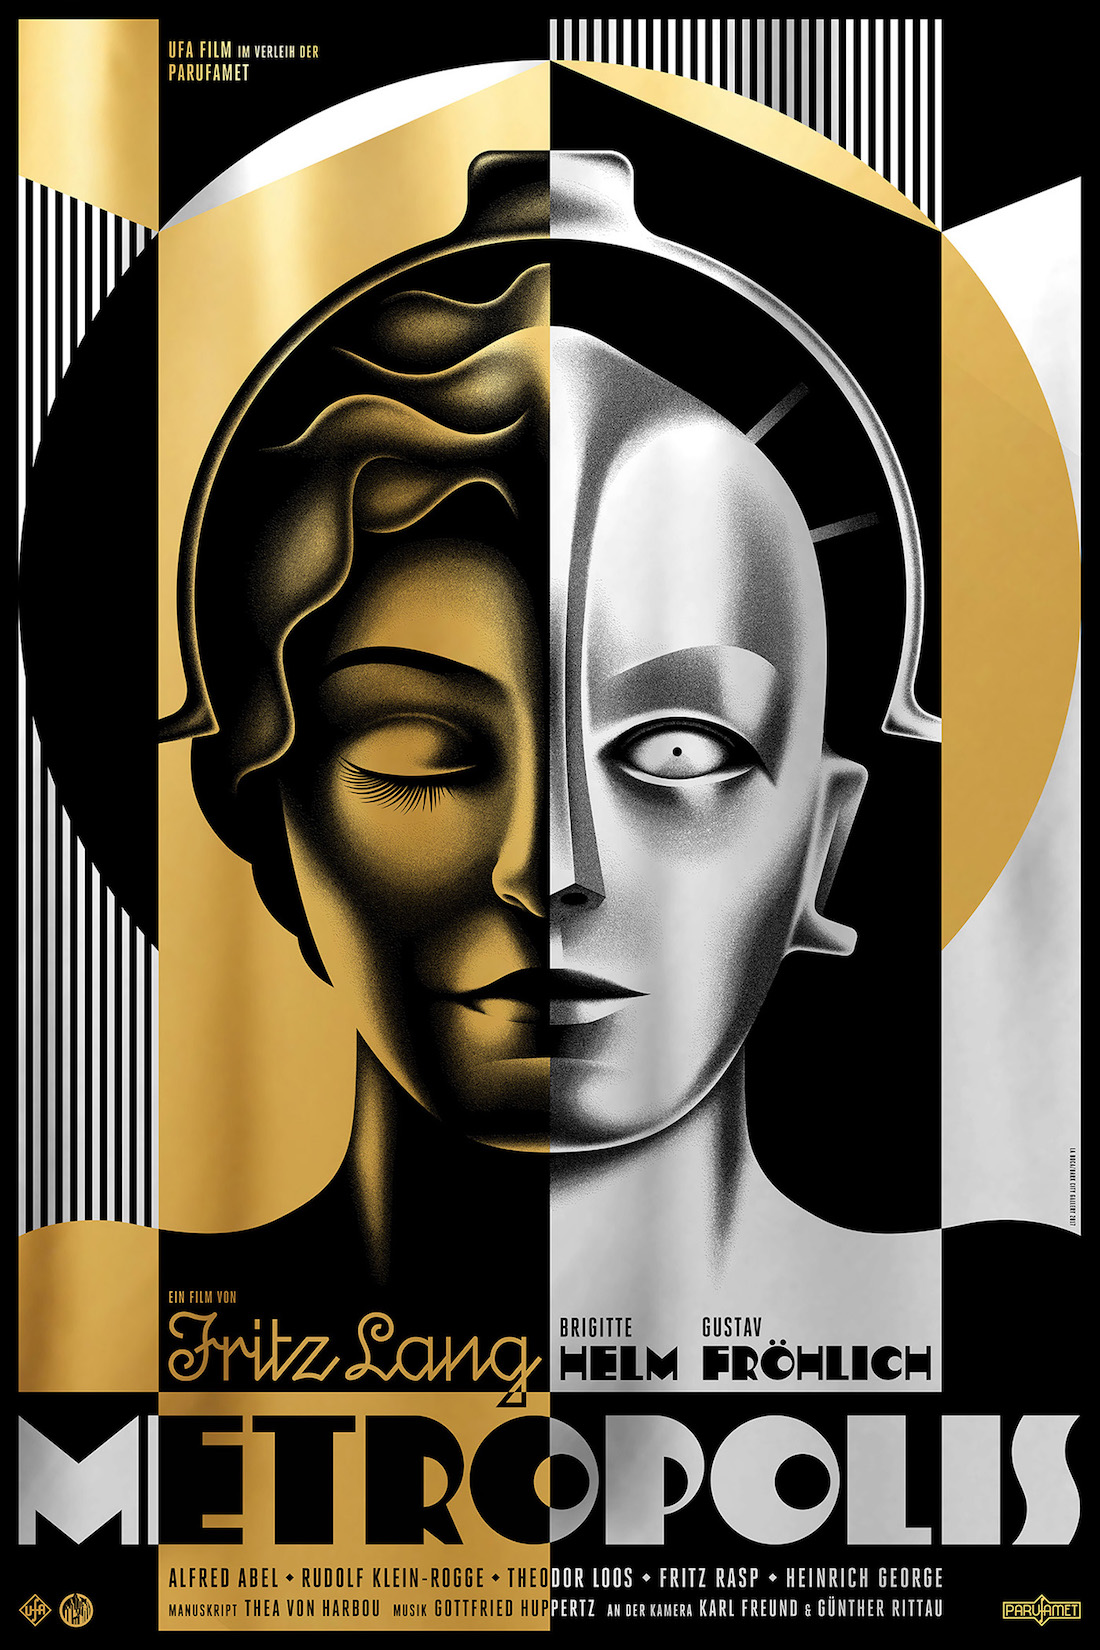 Metropolis poster by La Boca (gold version)